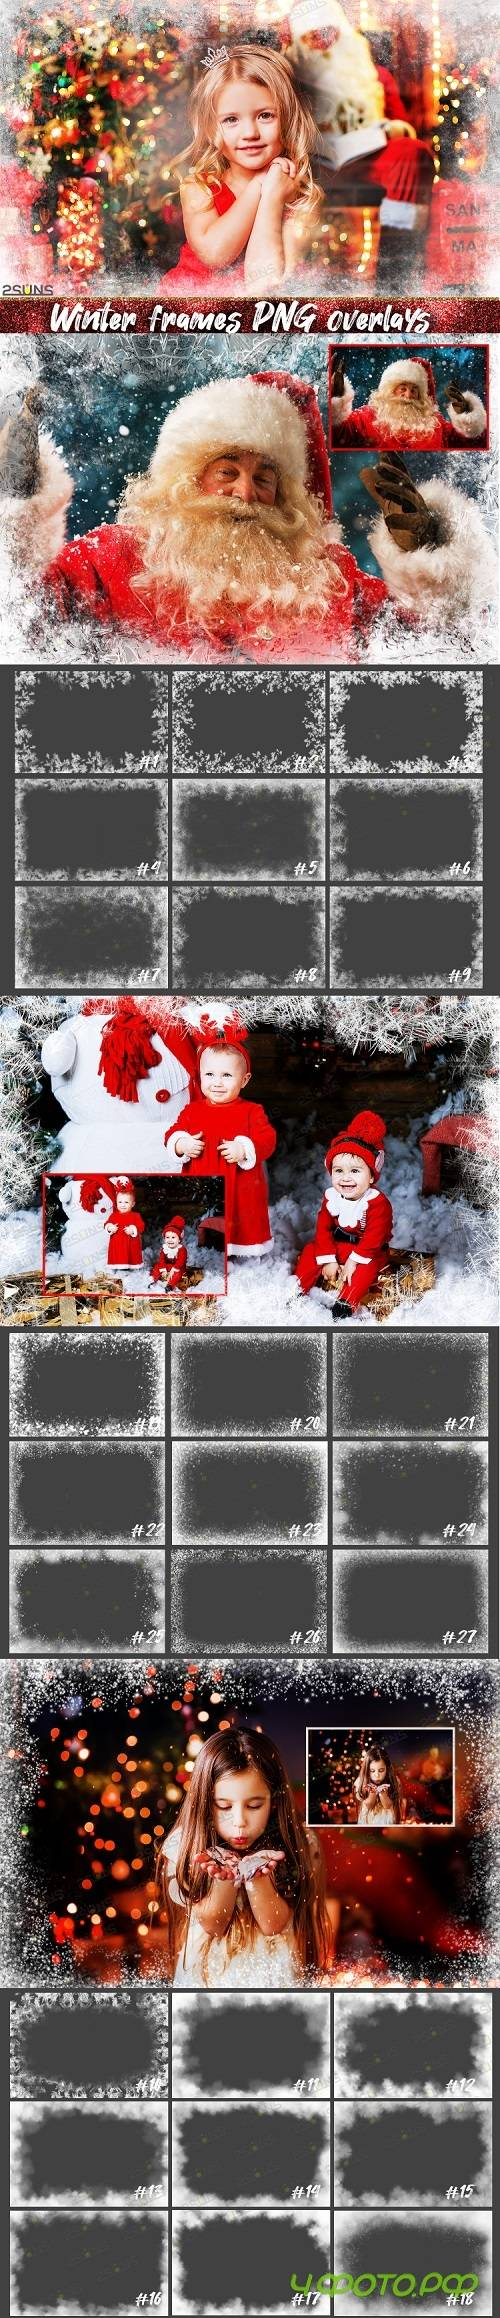 Download photo overlays, christmas winter frames PNG - 407181